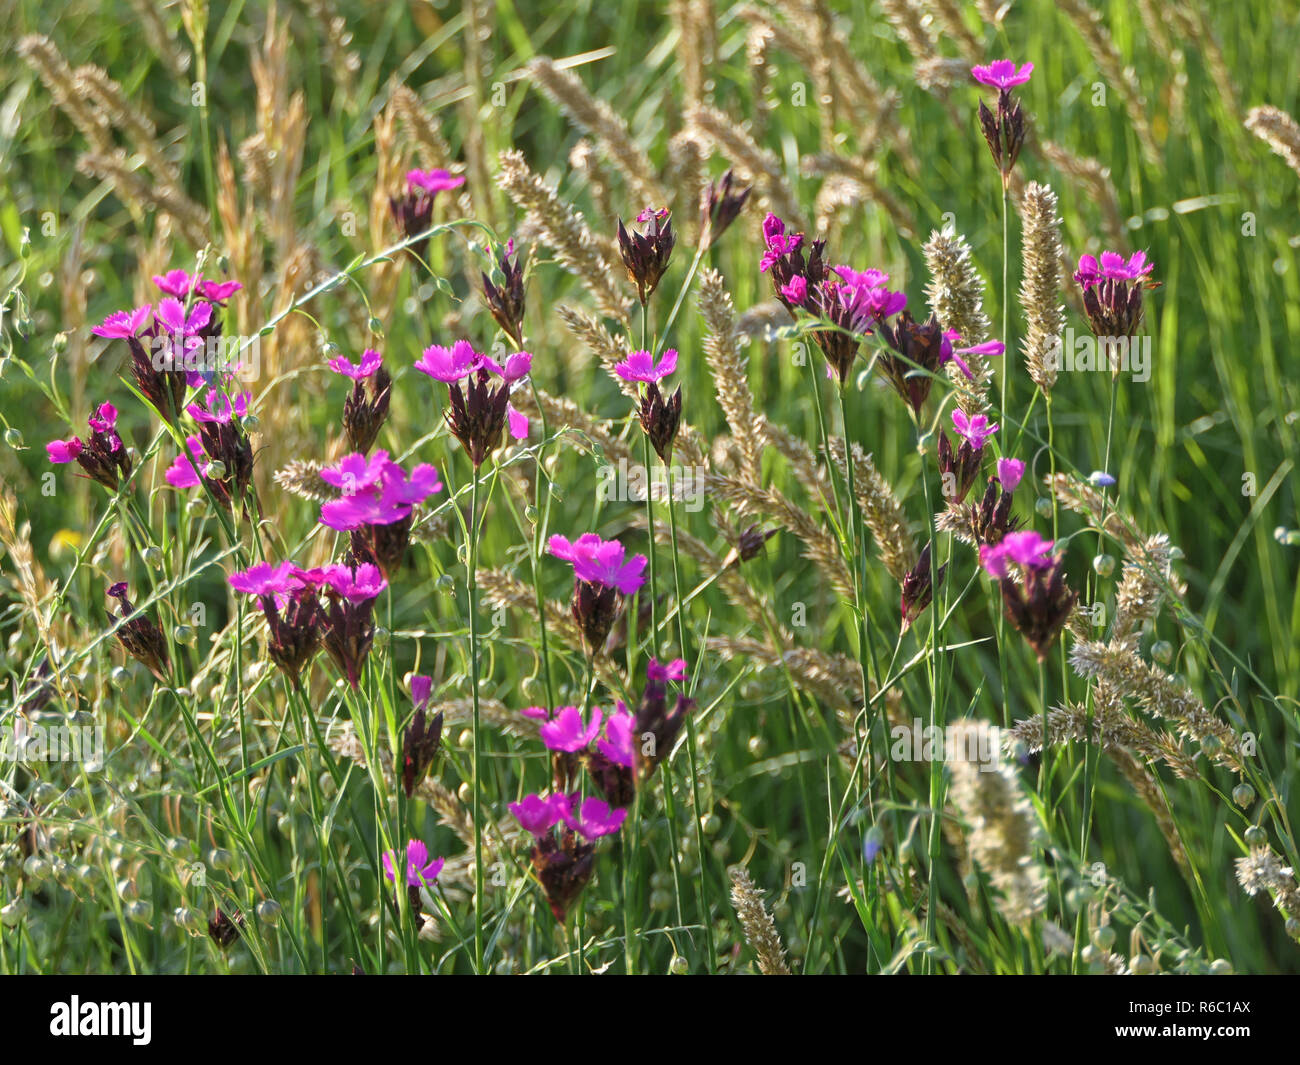 Carthusian Carnations, Dianthus Carthusianorum, In A Flower Meadow - Stock Image